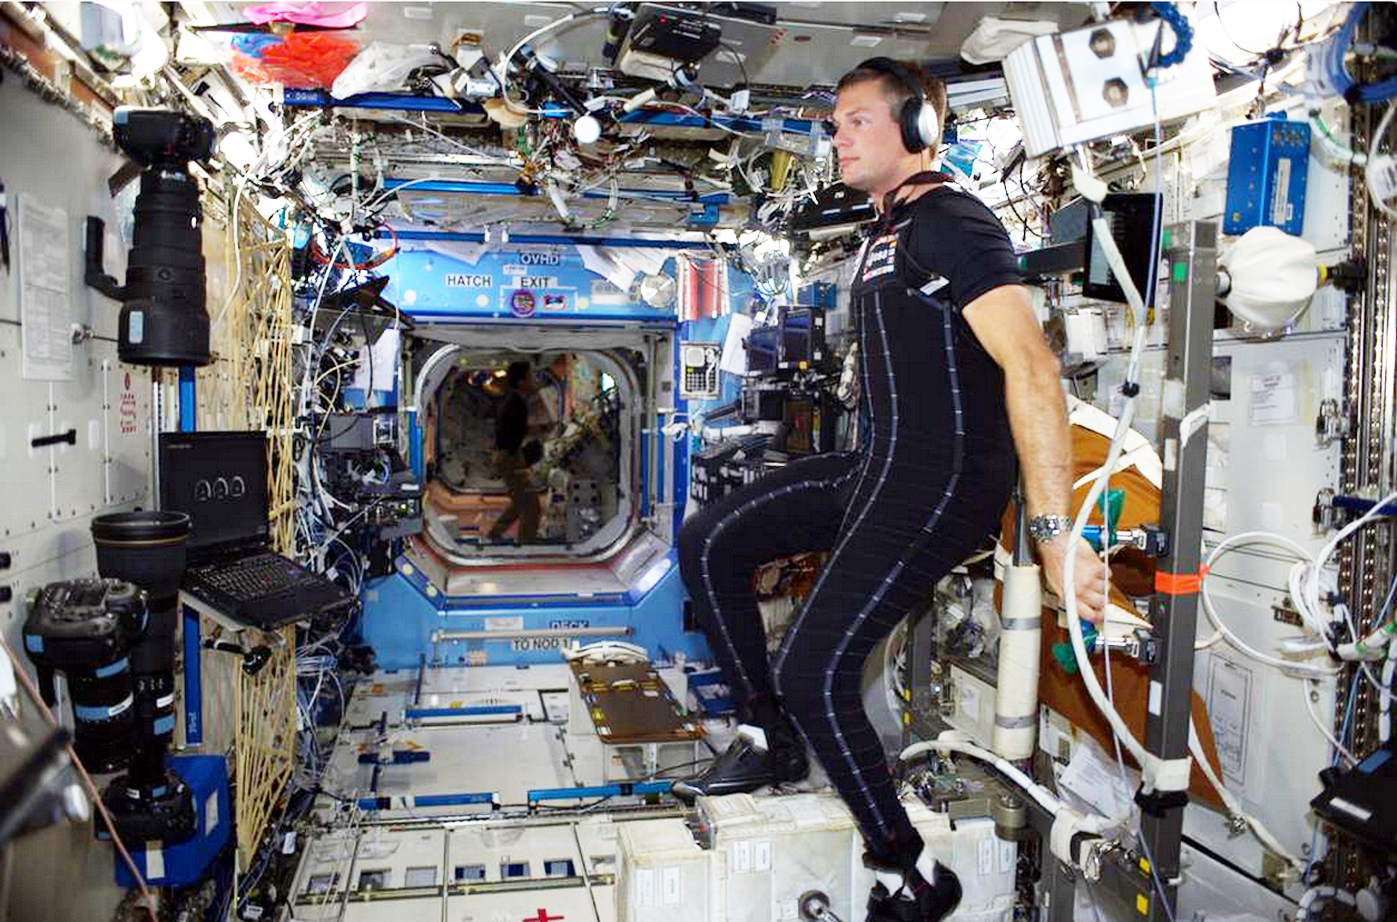 An astronaut wearing skin-tight black clothing is surrounded by lots of different black and white technological devices.